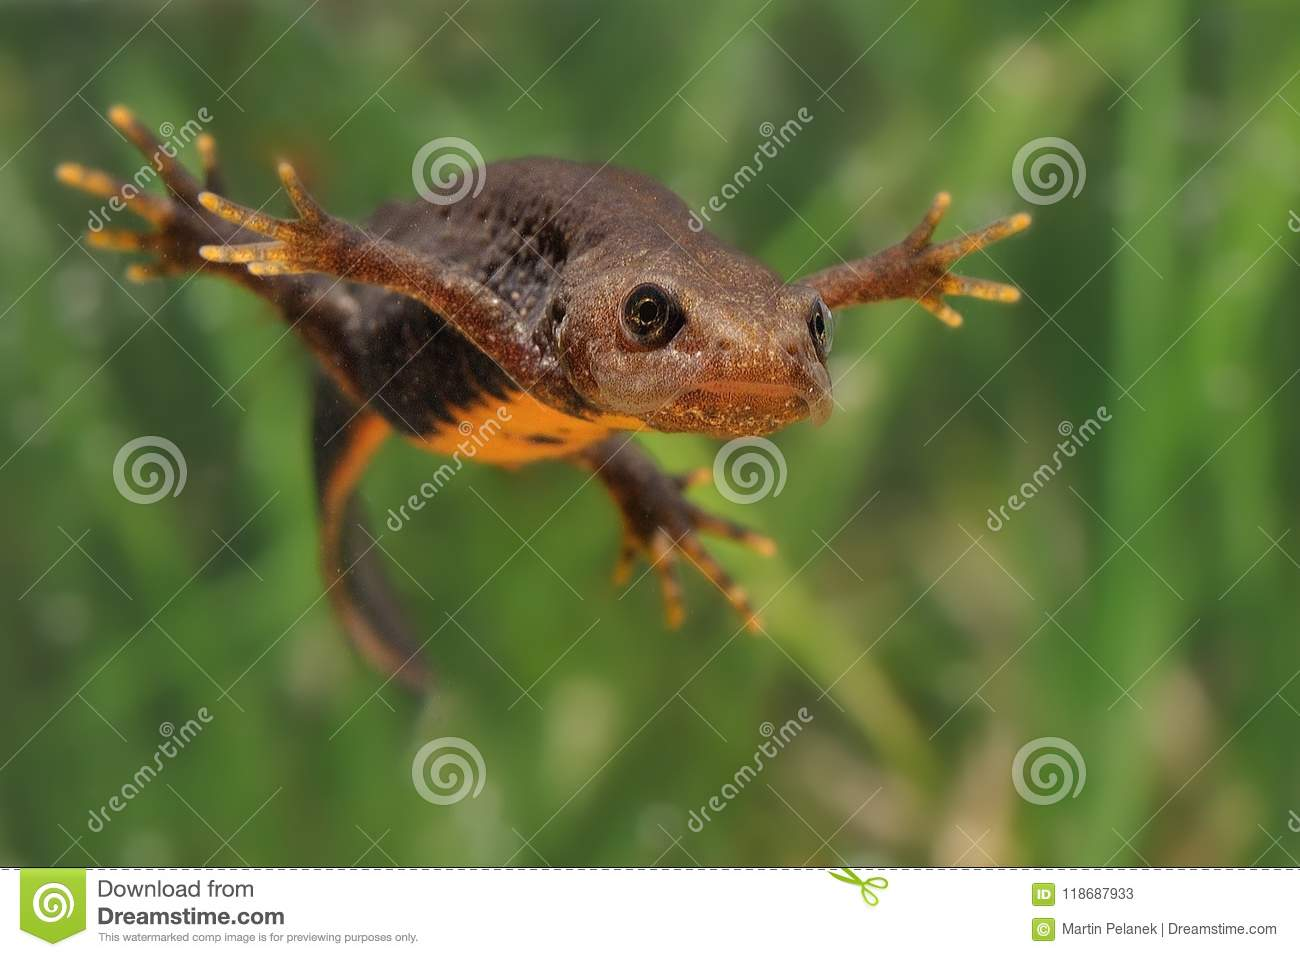 Great Crested Newt Triturus cristatus swimming in the water. Green background with water plants.